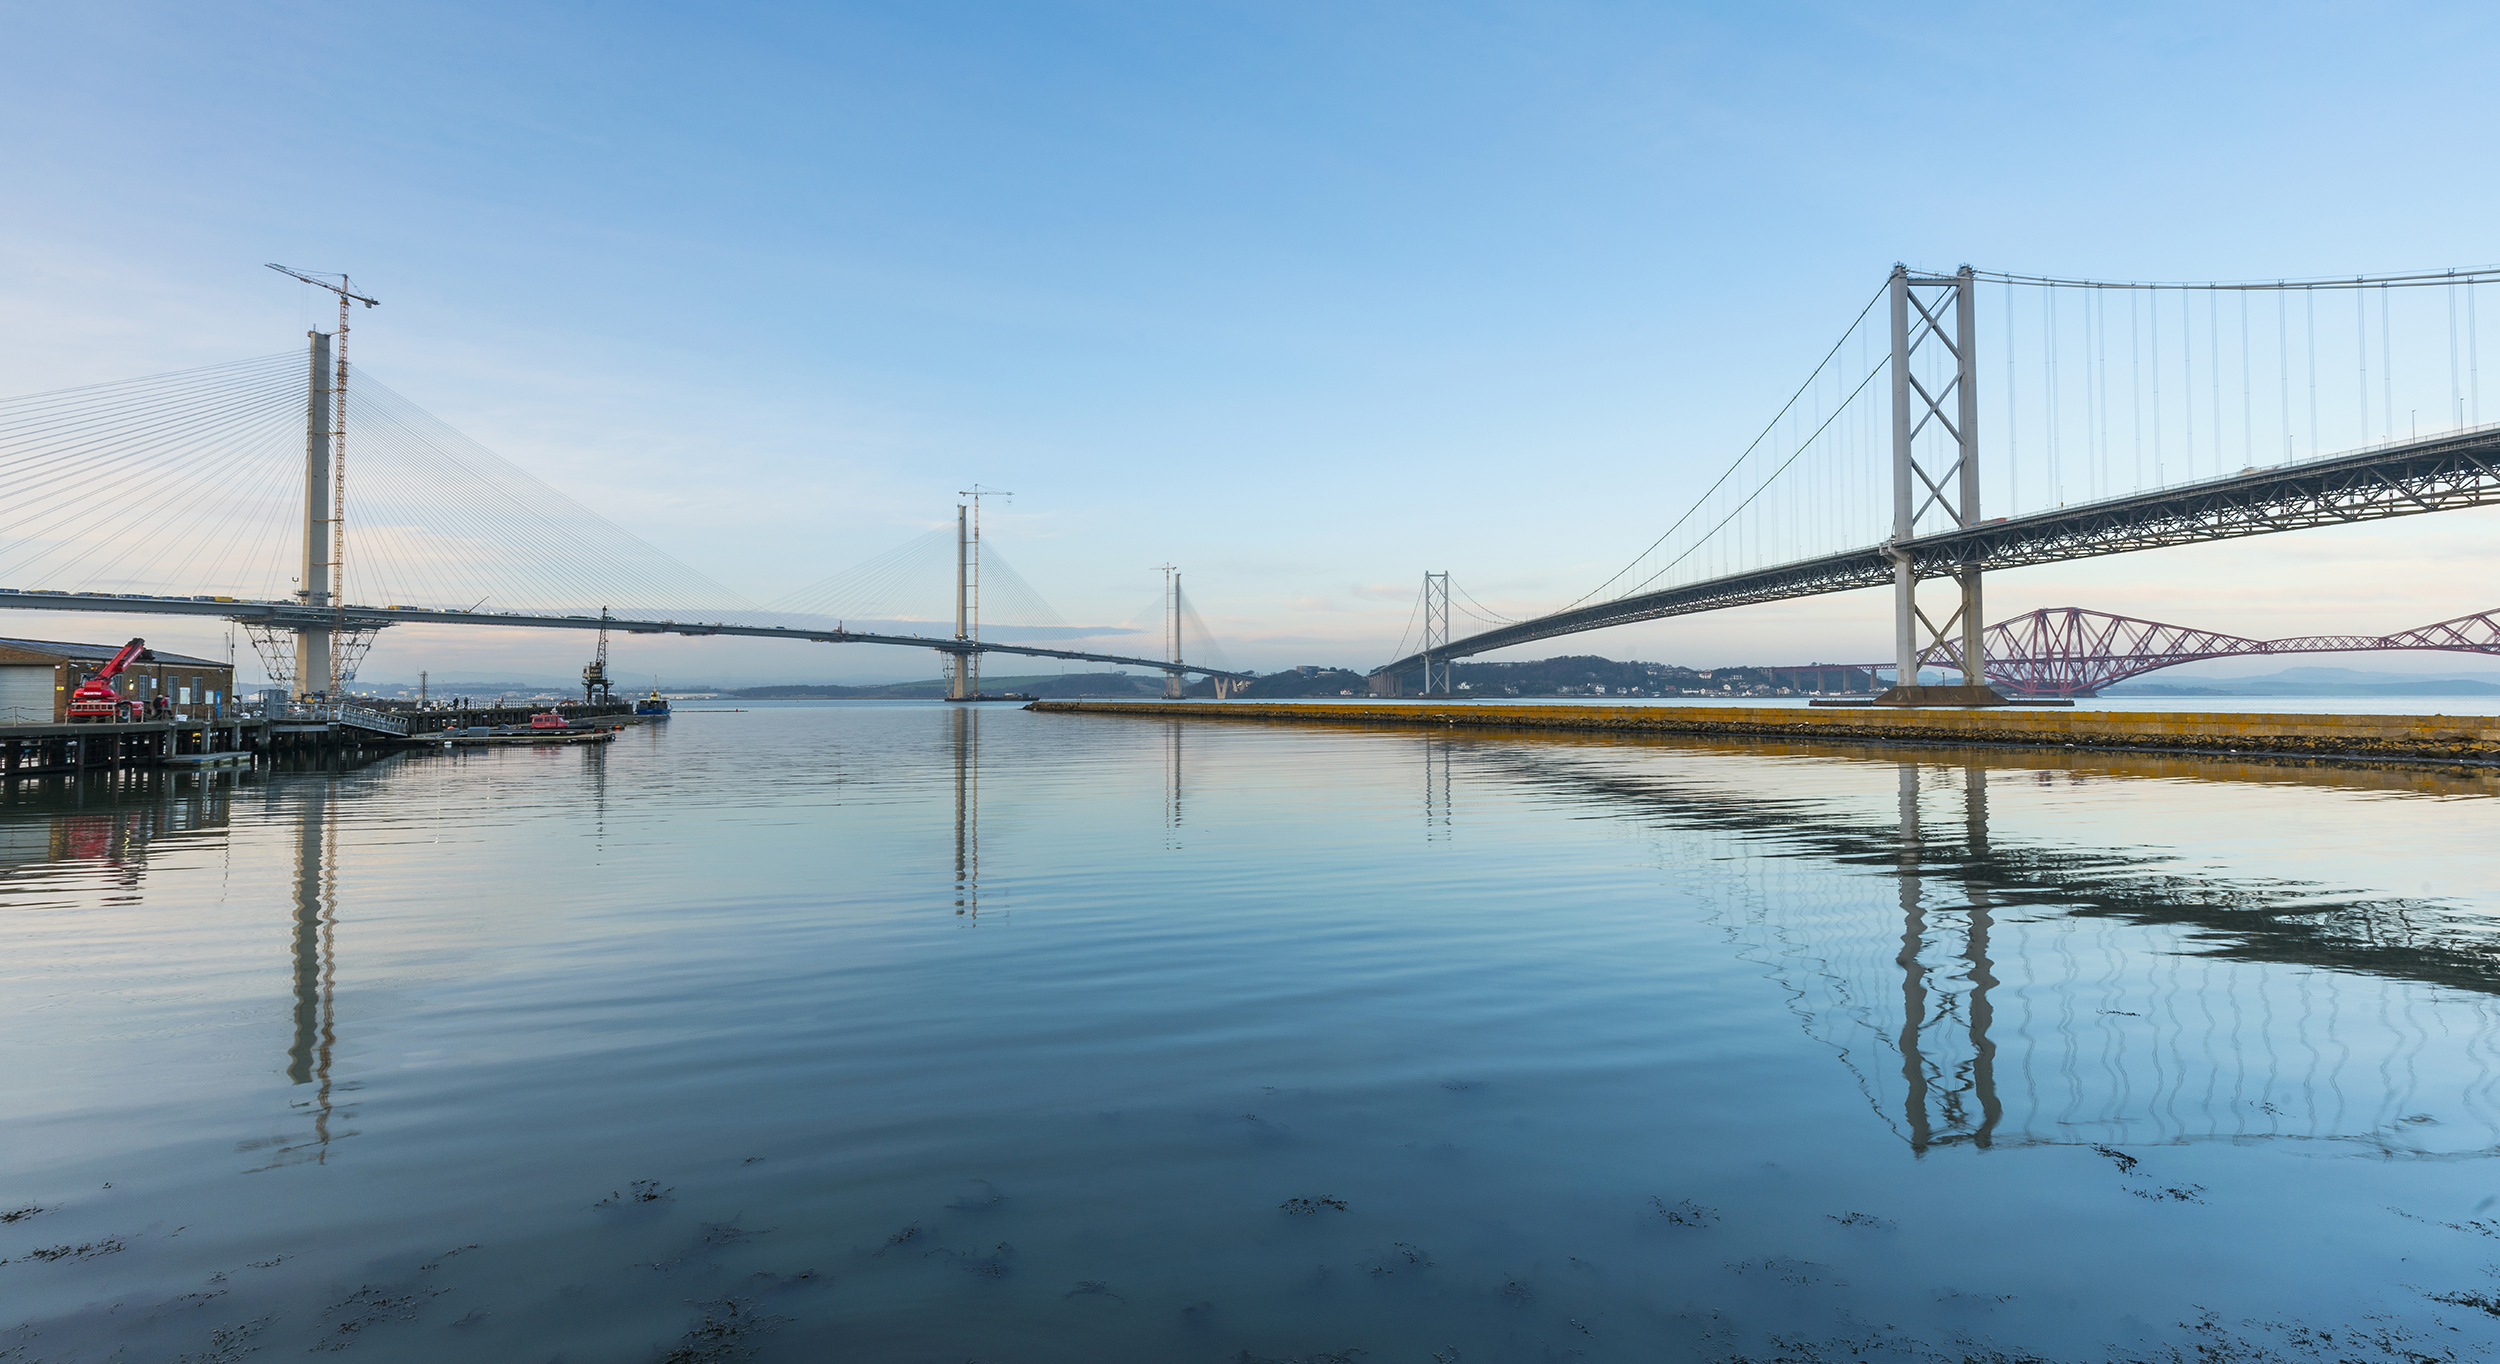 Dissing_Weitling_Queensferry_Crossing_Visit_Scotland_01_2500.jpg